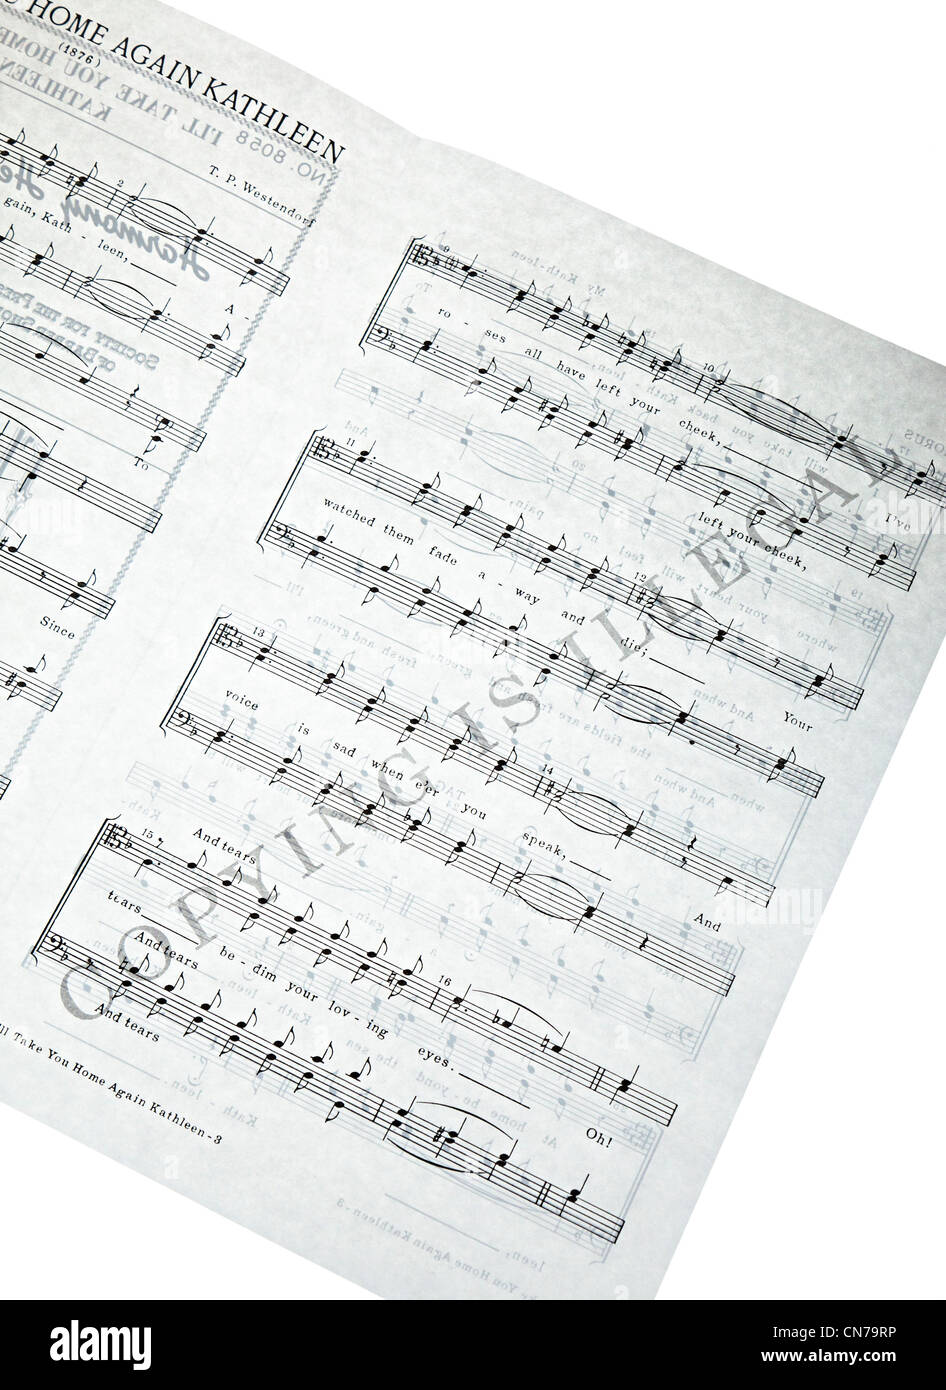 Sheet music overprinted with Copying is Illegal - Stock Image